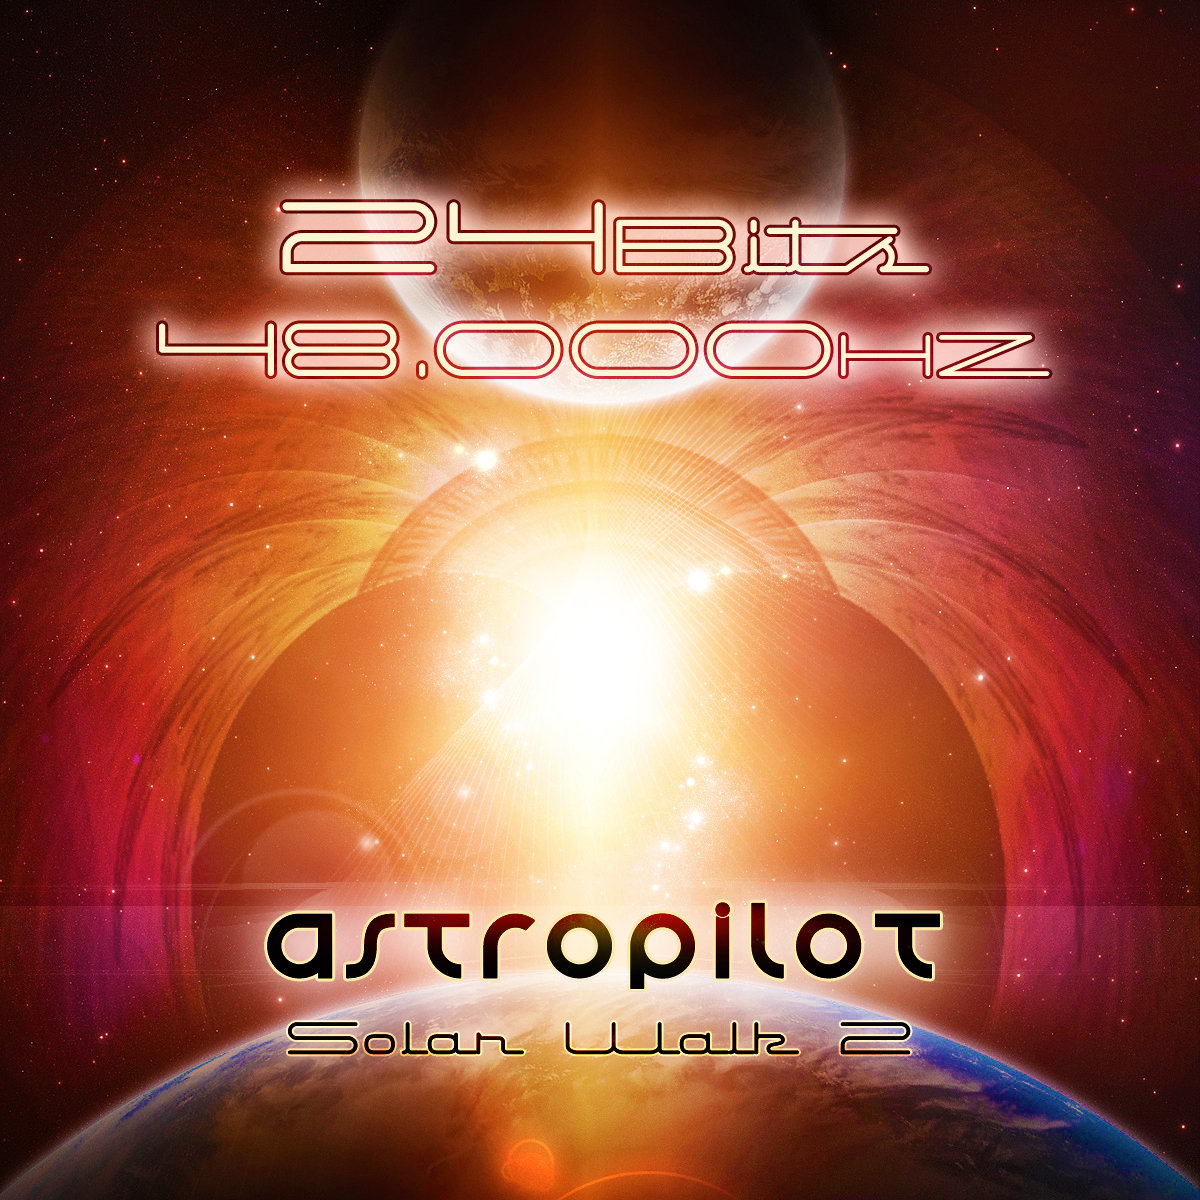 AstroPilot - In The Middle (Album Edit) @ 'Solar Walk 2' album (24bits, 48k)